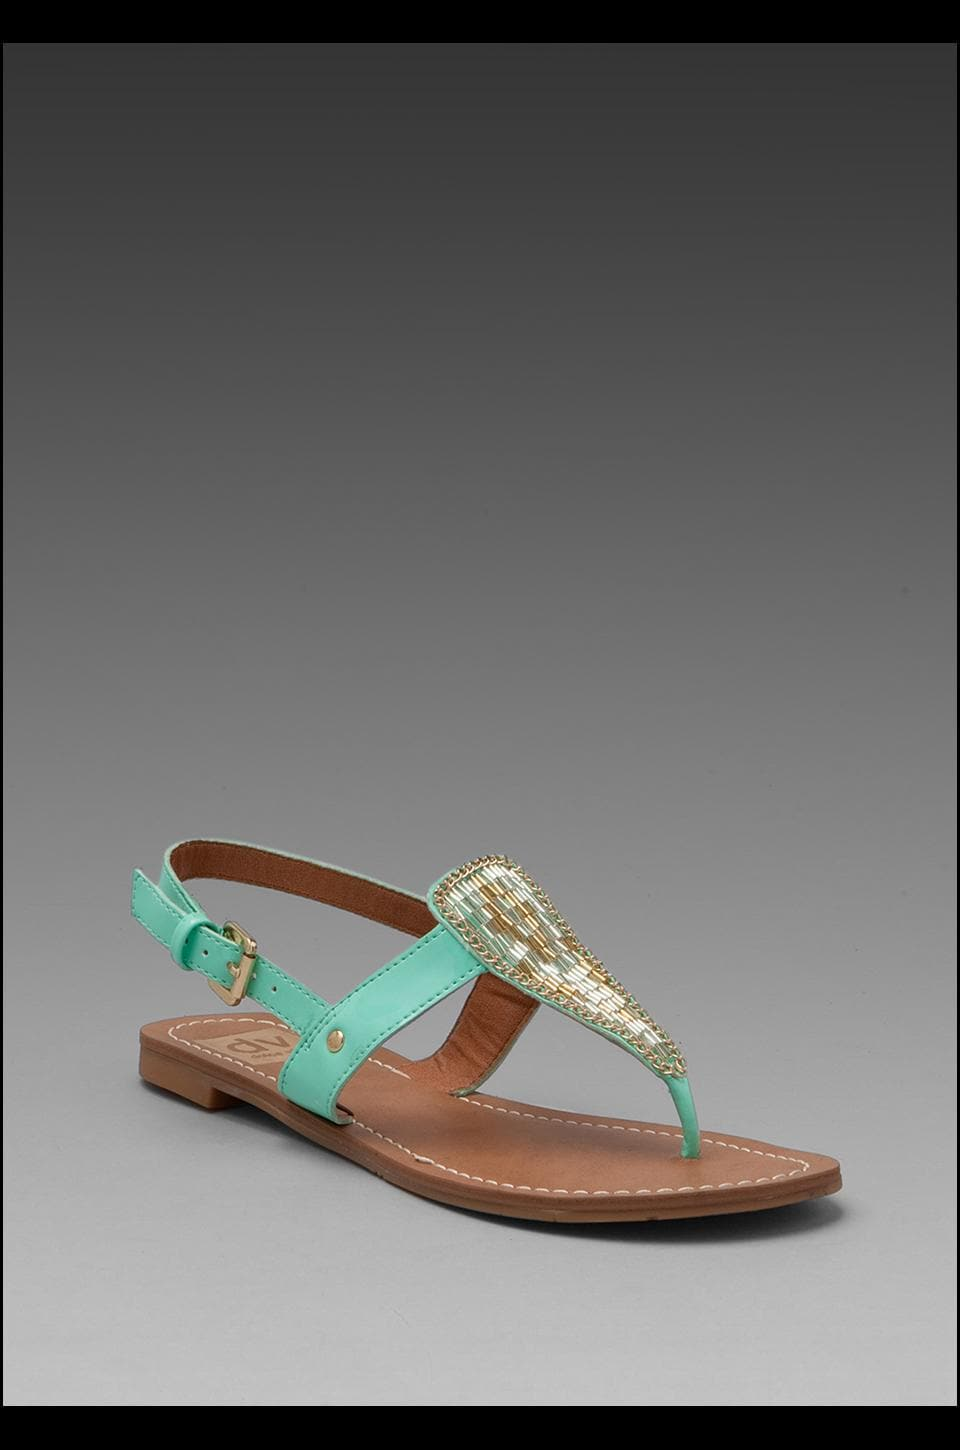 Dolce Vita Domino Sandal in Mint